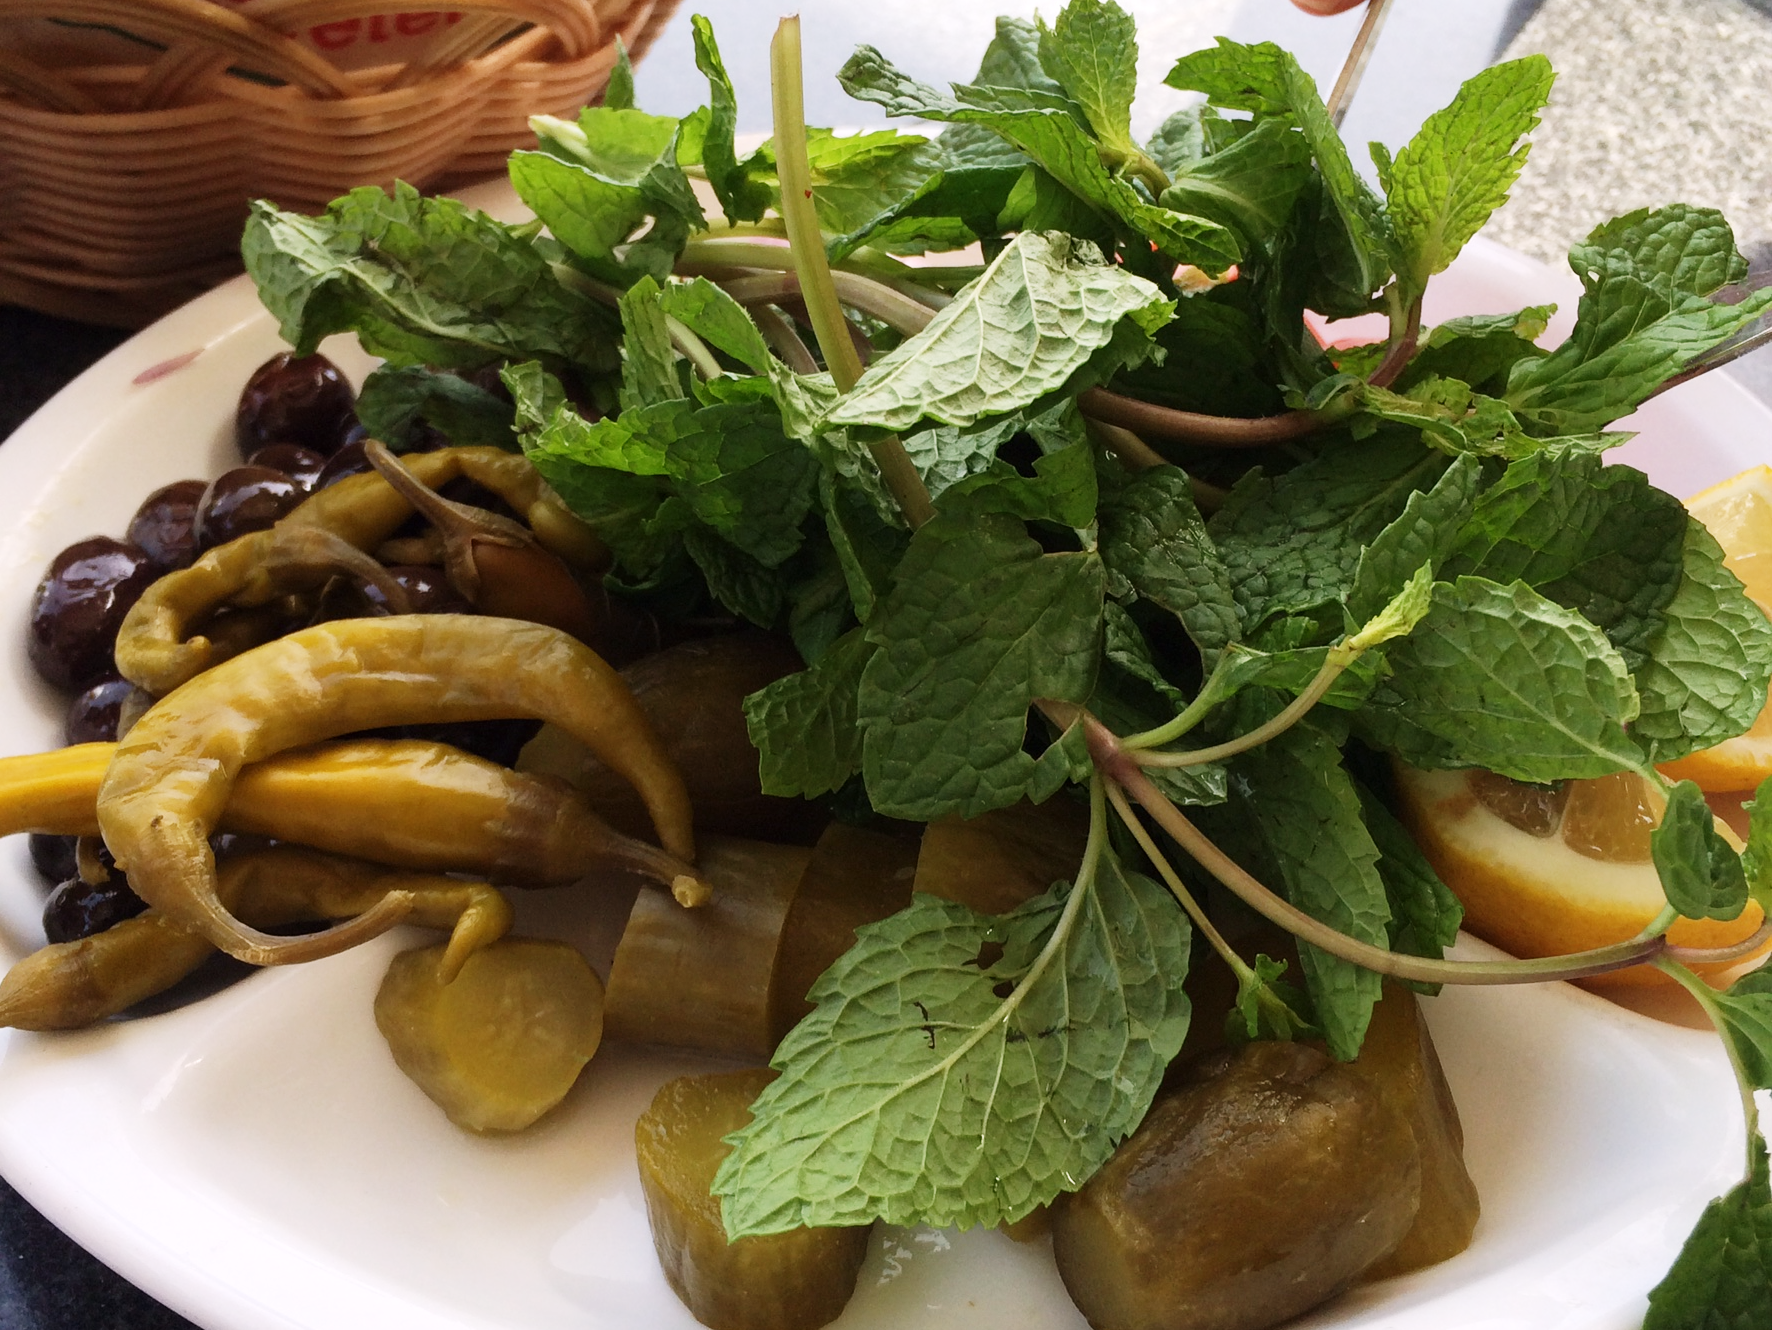 Lebanese flower - pickles